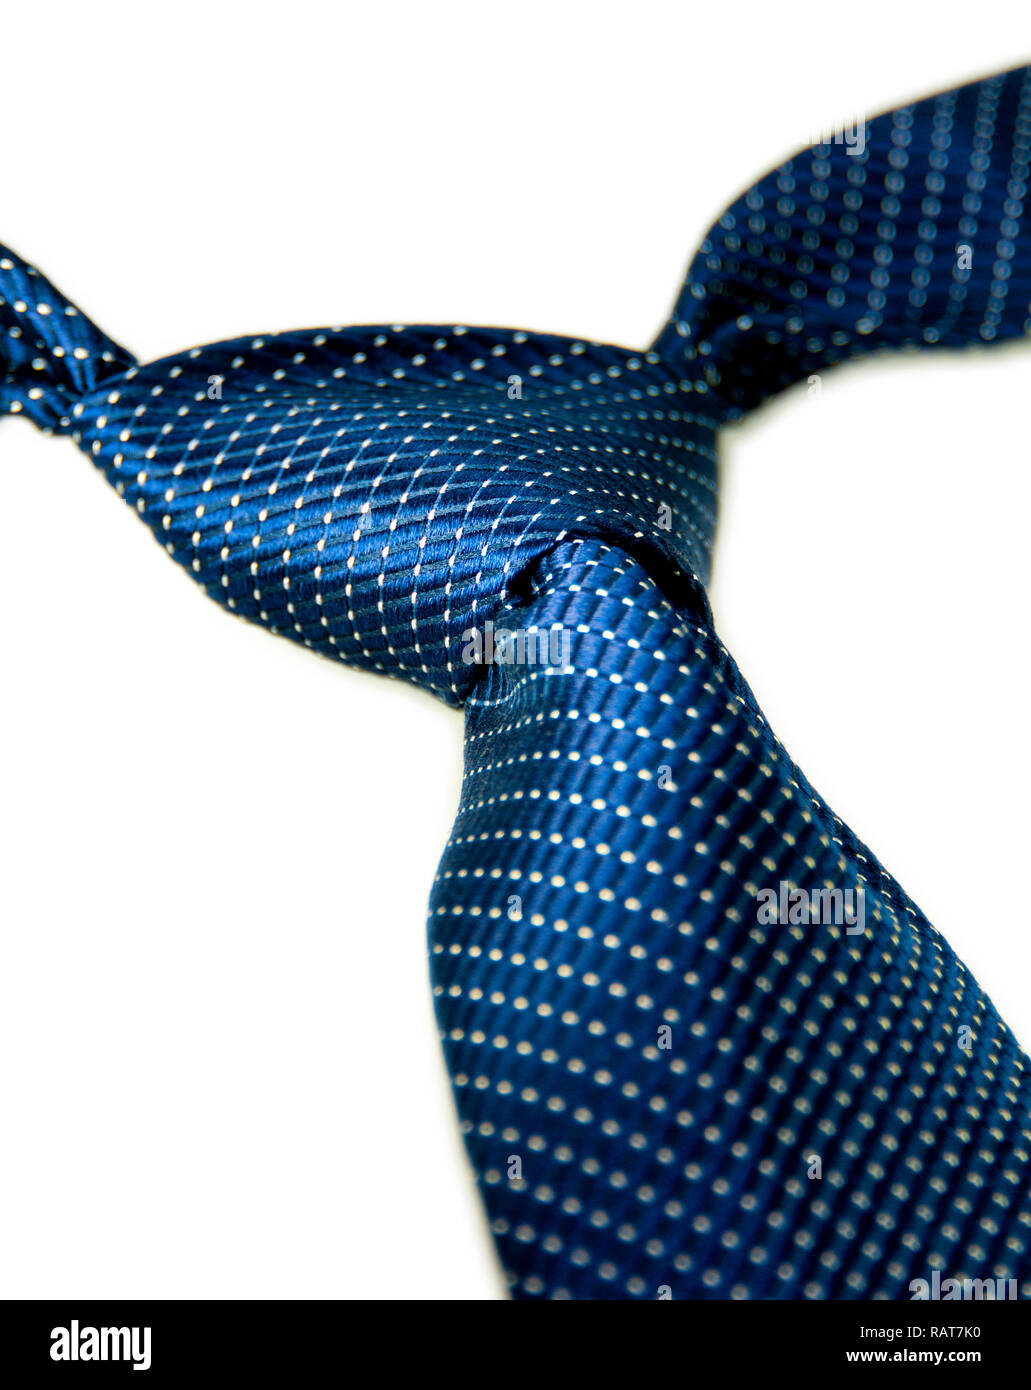 Classic Blue Micro Dot Patterned Necktie with Windsor Knot - Stock Image